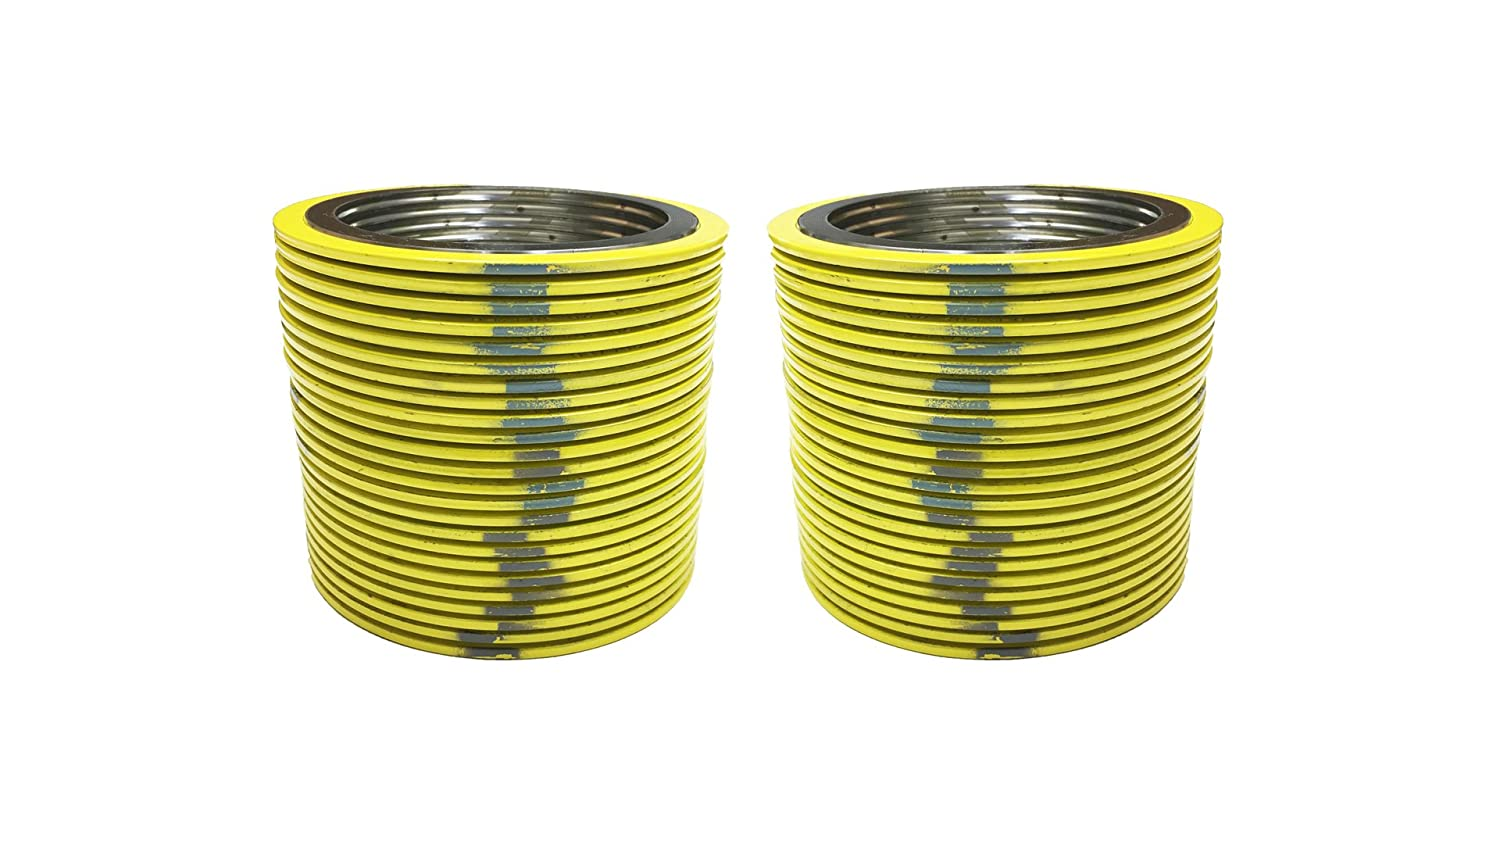 Pressure Class 150# for 3 Pipe Supplied by Sur-Seal Inc for 3 Pipe Sterling Seal 9000IR3304GR150X12 304 Stainless Steel Spiral Wound Gasket with 304SS Inner Ring and Flexible Graphite Filler Yellow with Grey Stripe of NJ Pack of 12